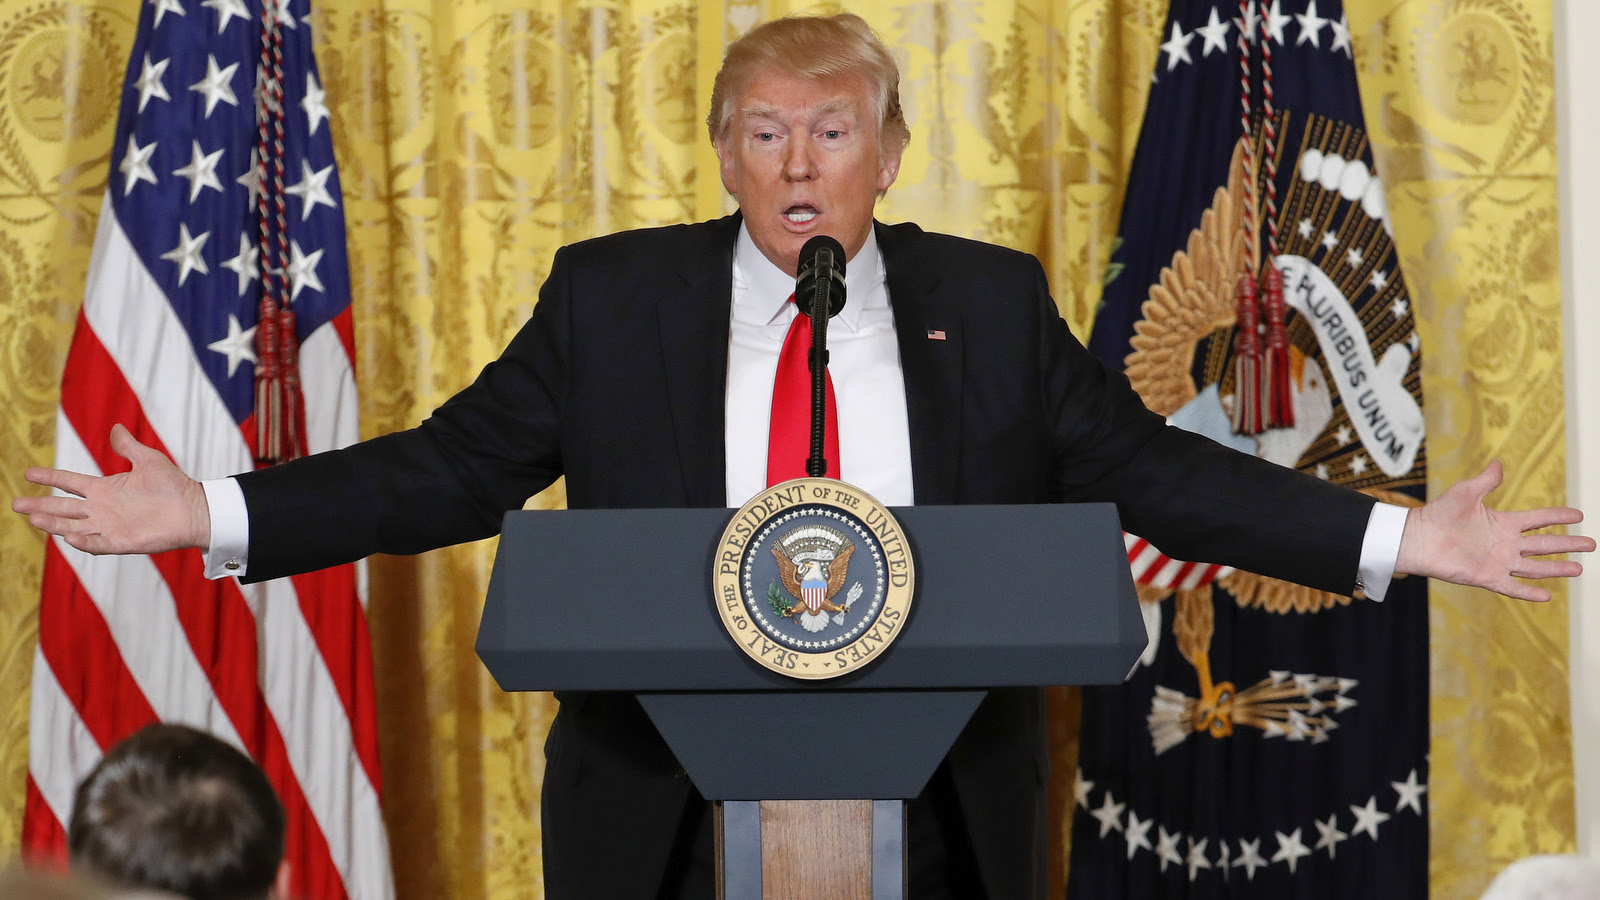 President Donald Trump speaks during a news conference in the East Room of the White House in Washington, Thursday, Feb. 16, 2017. (AP/Pablo Martinez Monsivais)